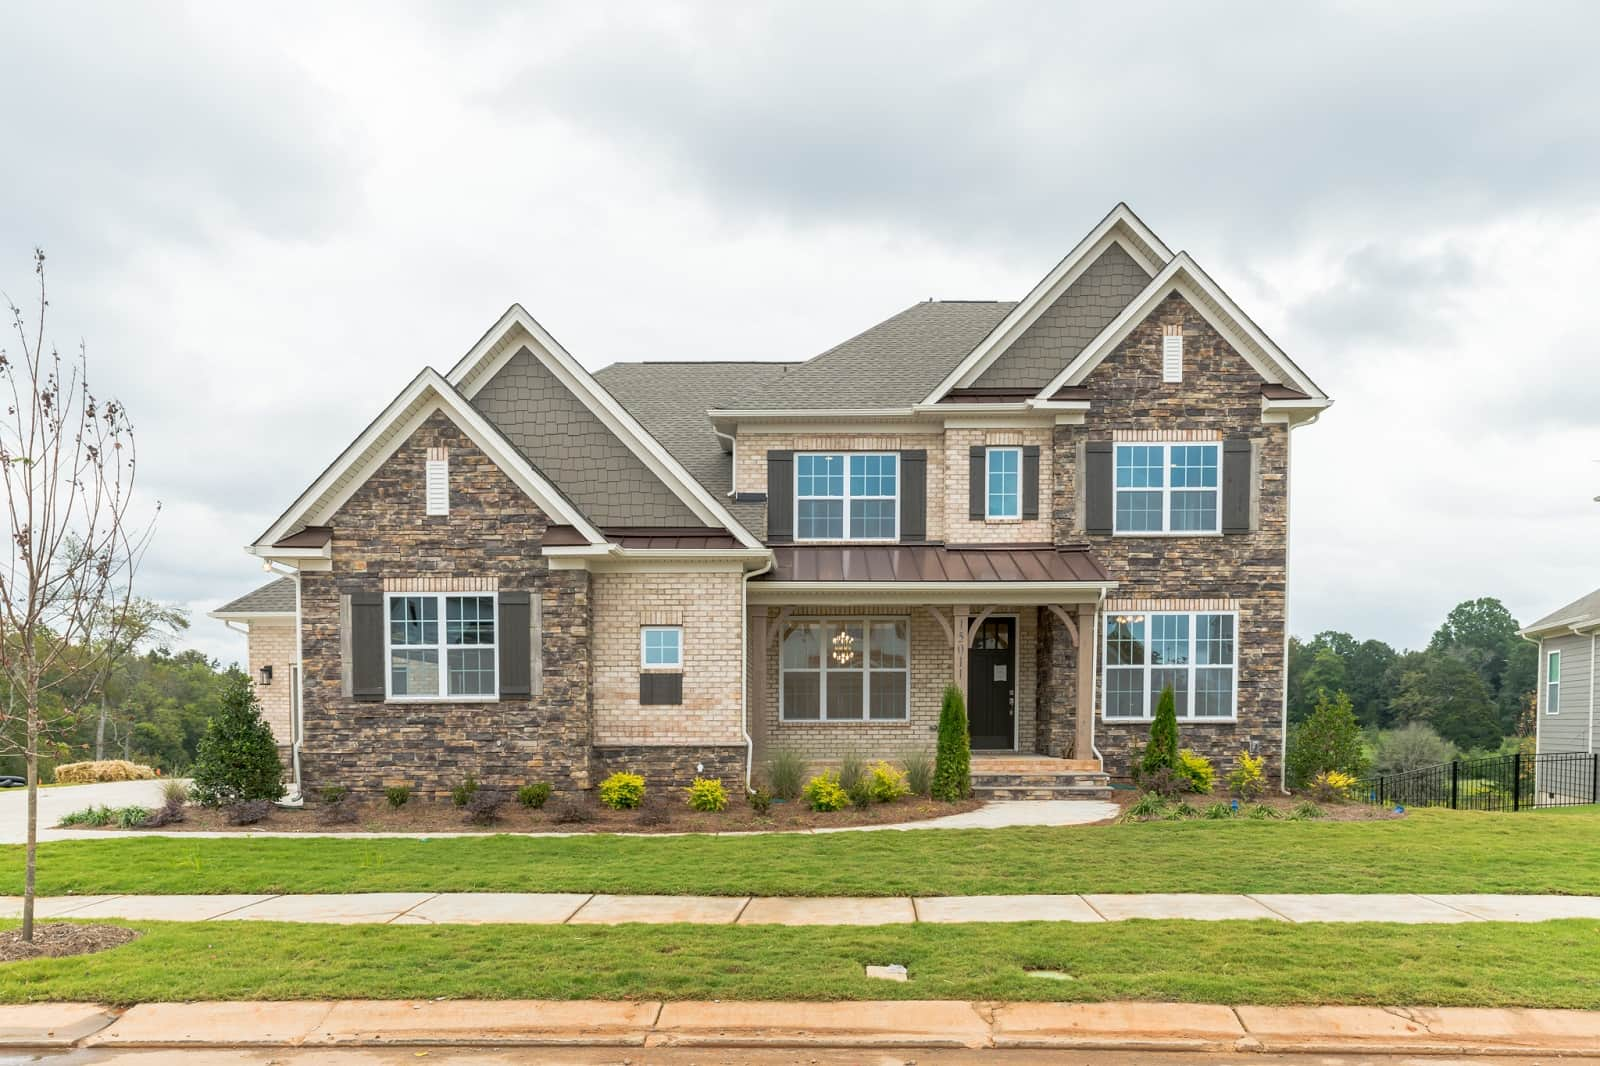 Real Estate Photography in Huntersville - NC - USA - Front View